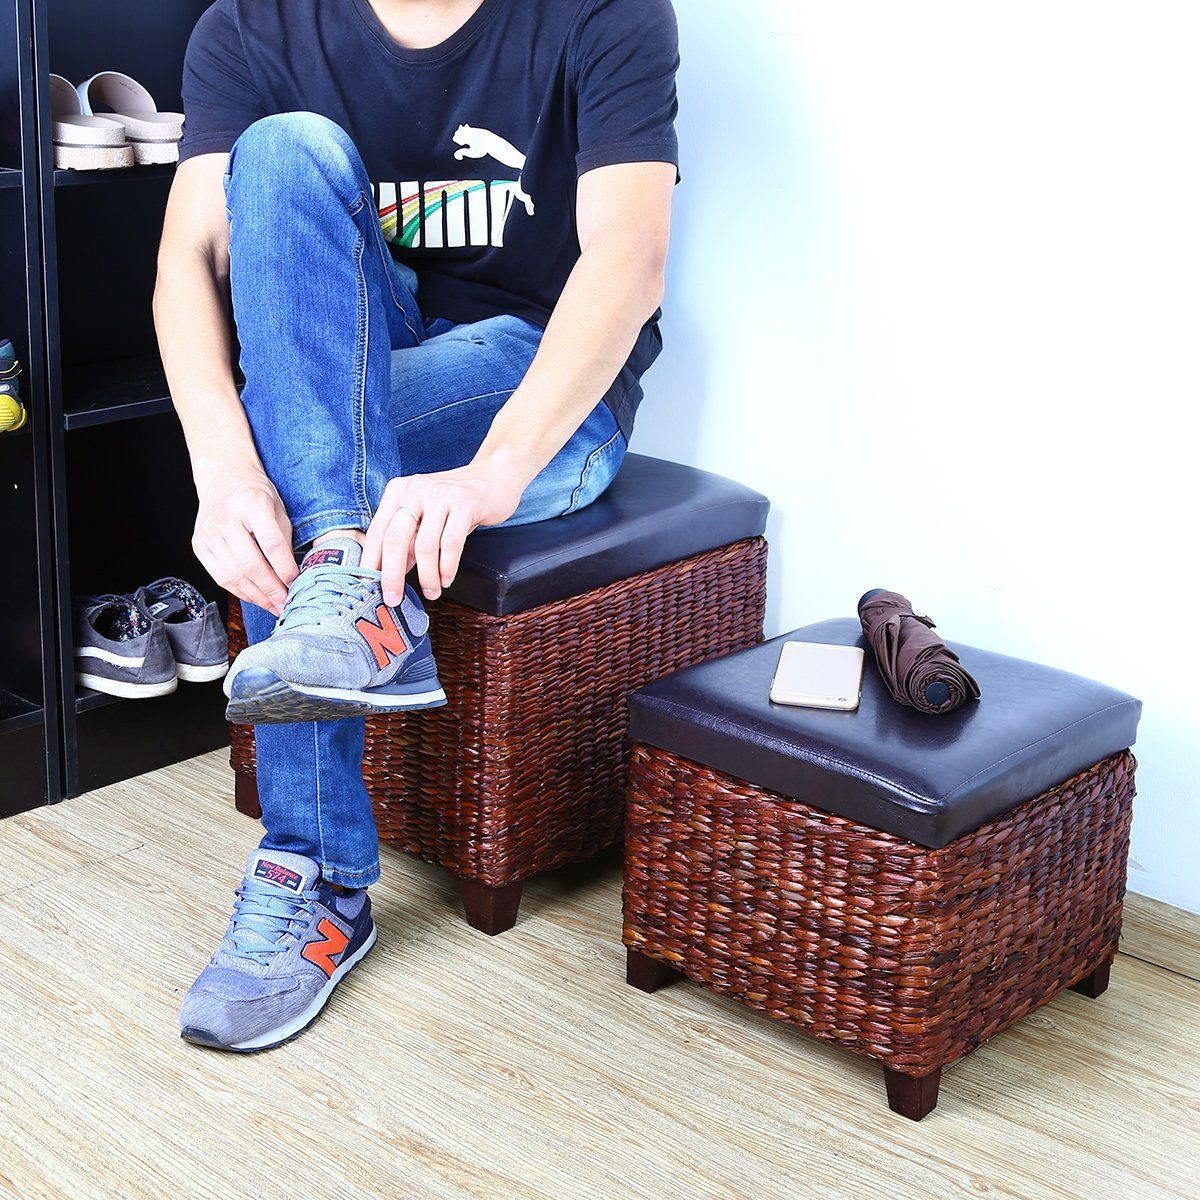 Beau Eshow Ottoman Rattan Ottoman With Storage Hassocks And Ottomans Foot Rest  Pouf Ottoman Foot Stools Cube Decoration Furniture Leather Ottoman Seating  Storage ...